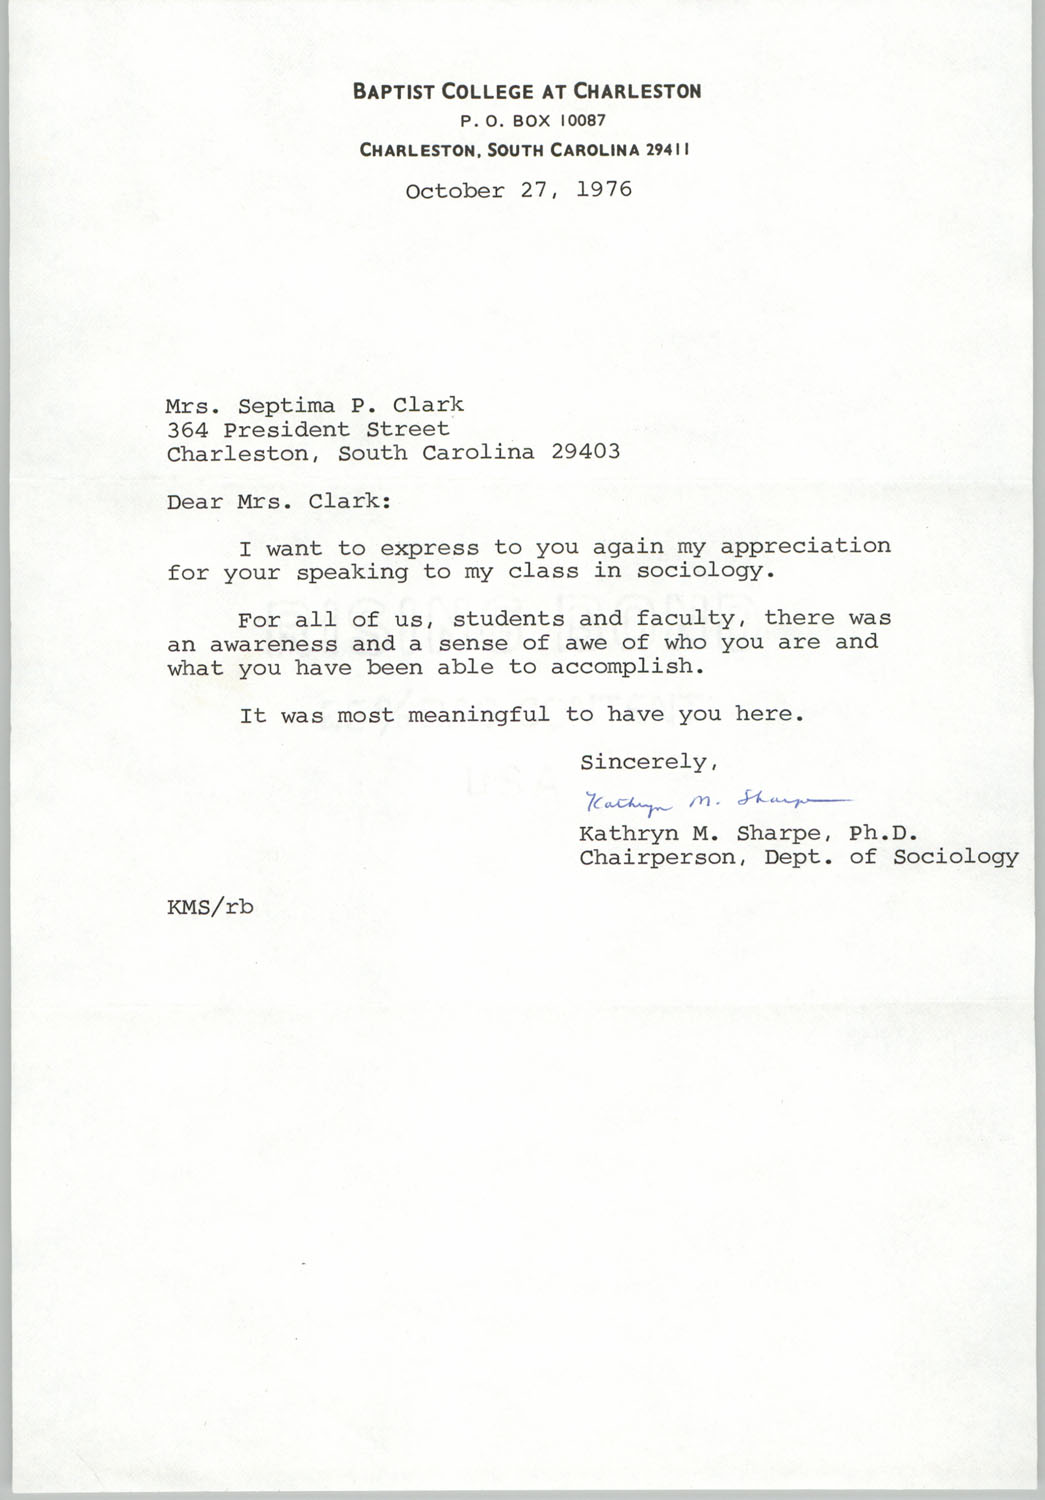 Letter from Kathryn M. Sharpe to Septima P. Clark, October 27, 1976